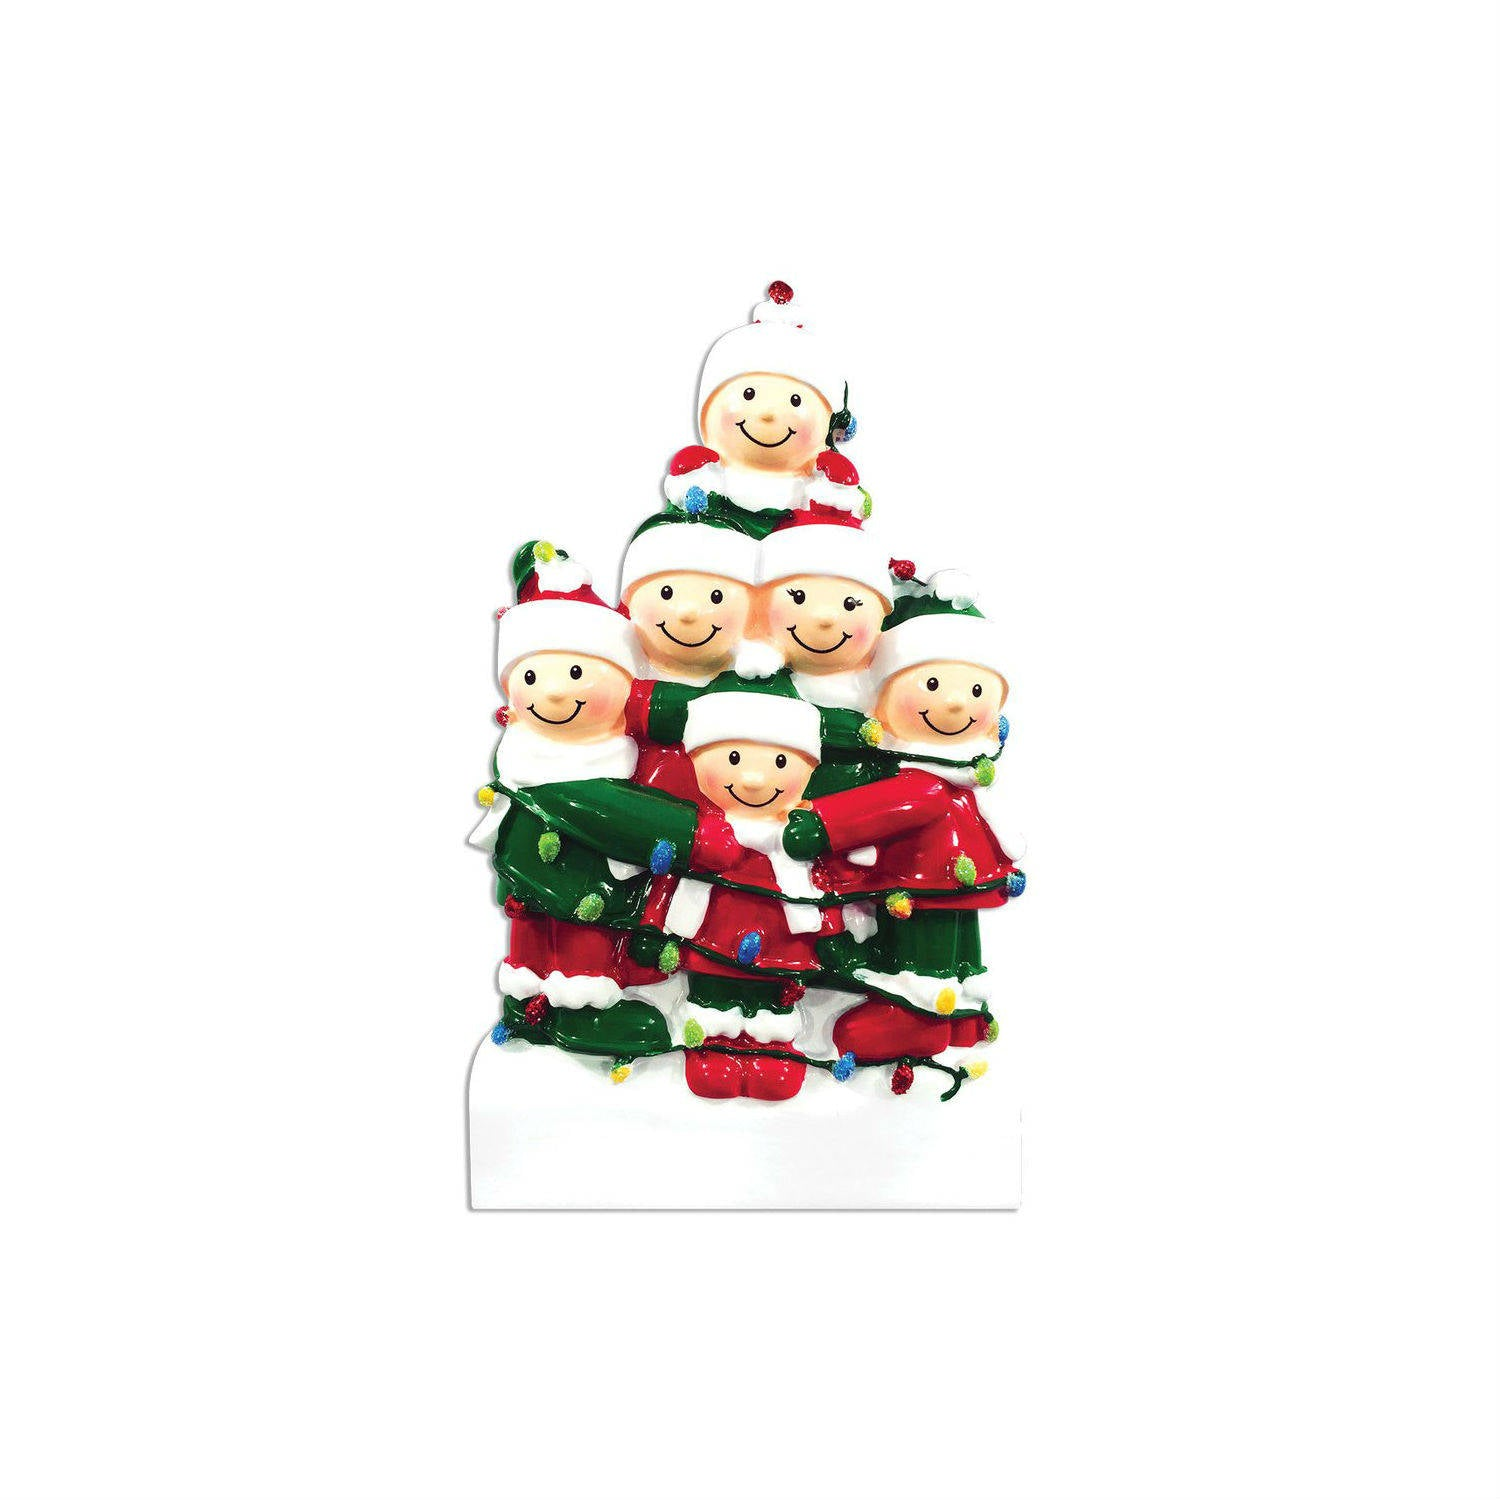 family of 6 Tangled In Lights Christmas Ornament